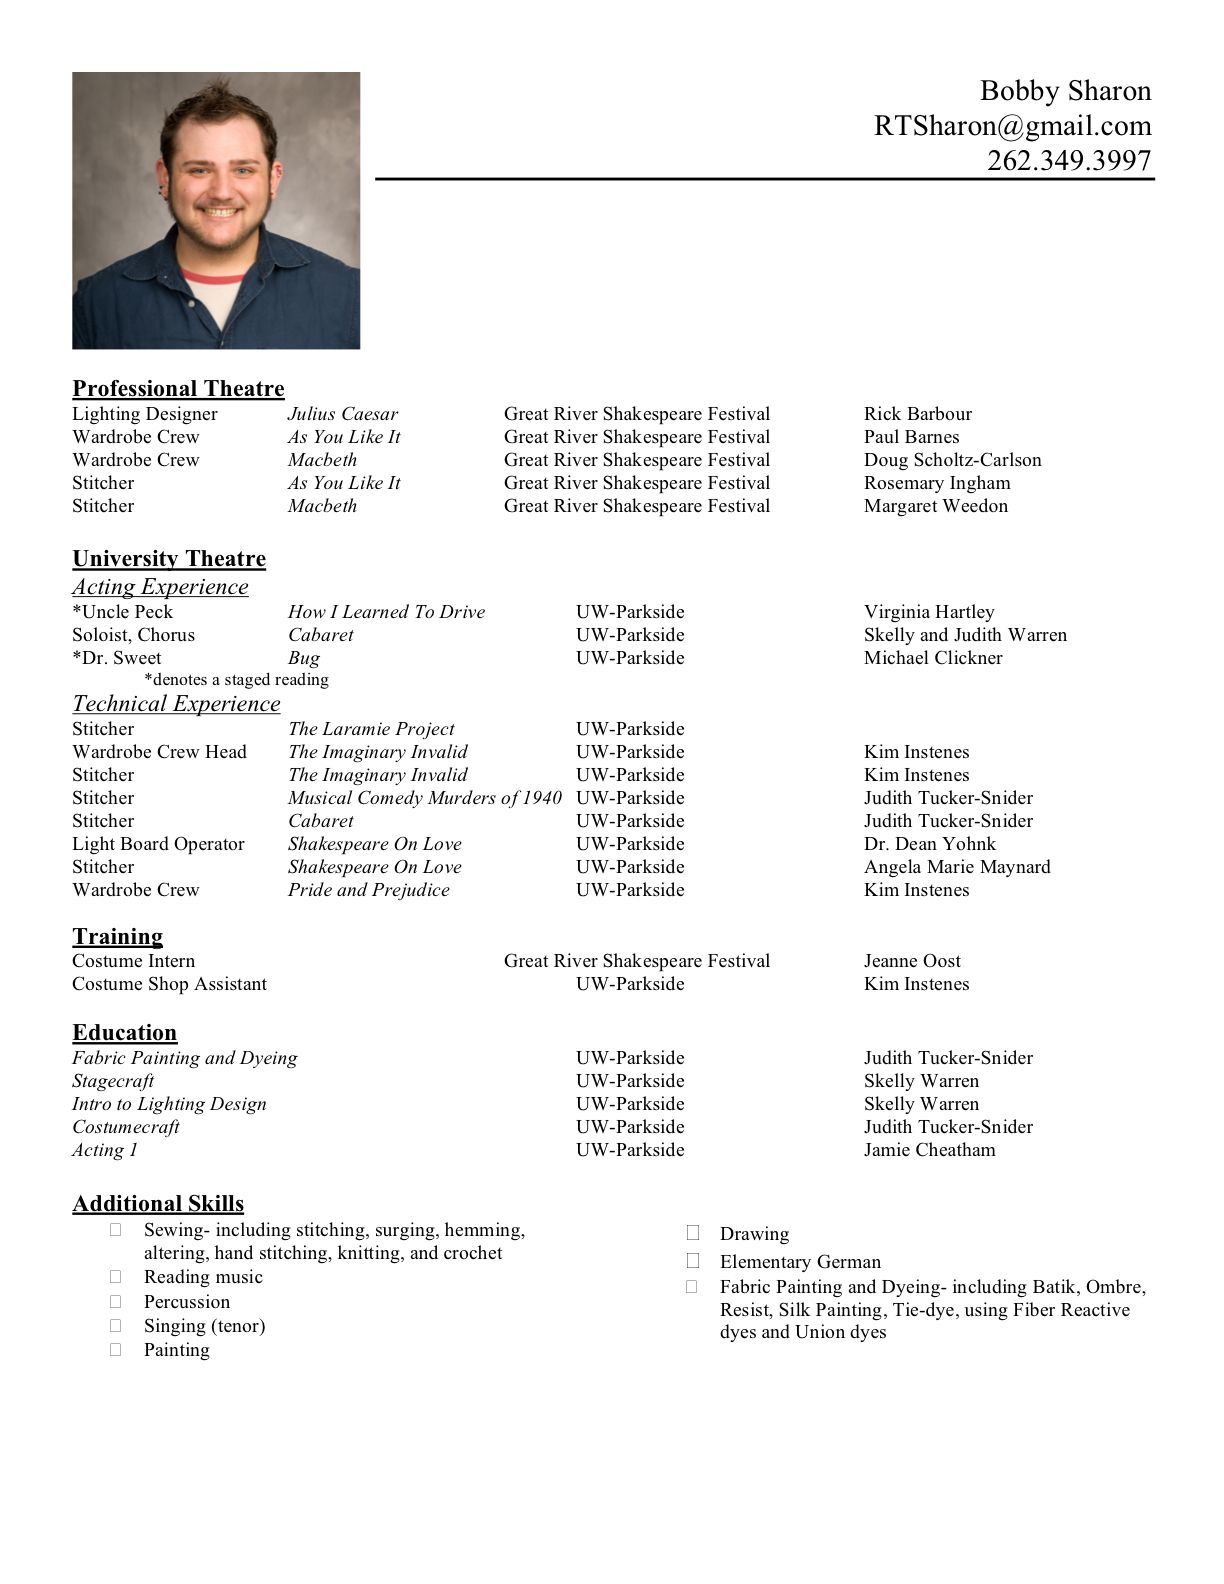 Format Job Resume Http Www Resumecareer Info Format Job Resume